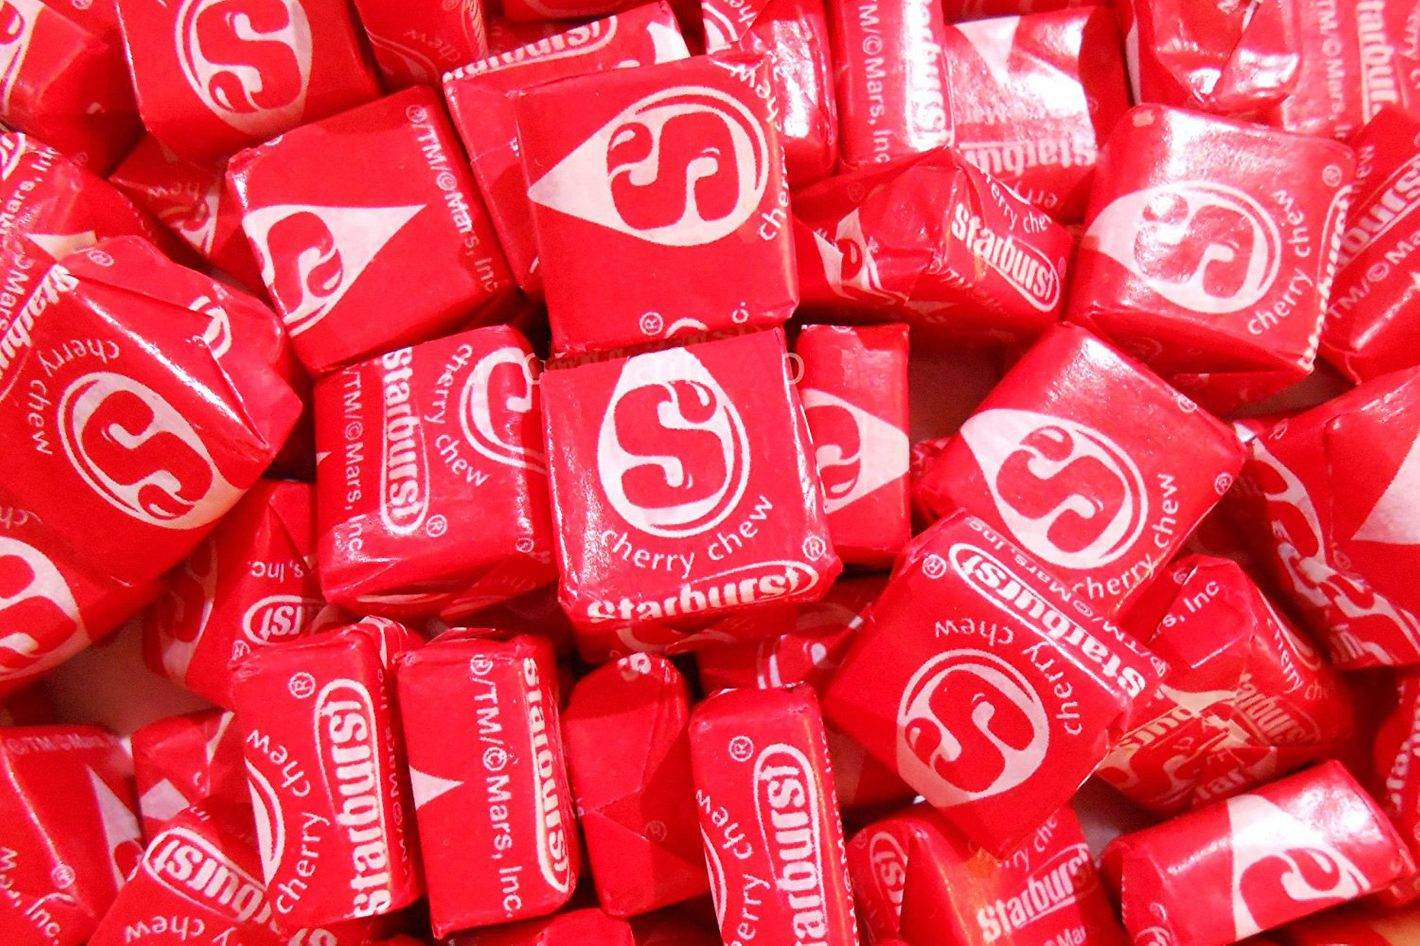 One Pound of Cherry Red Starbursts